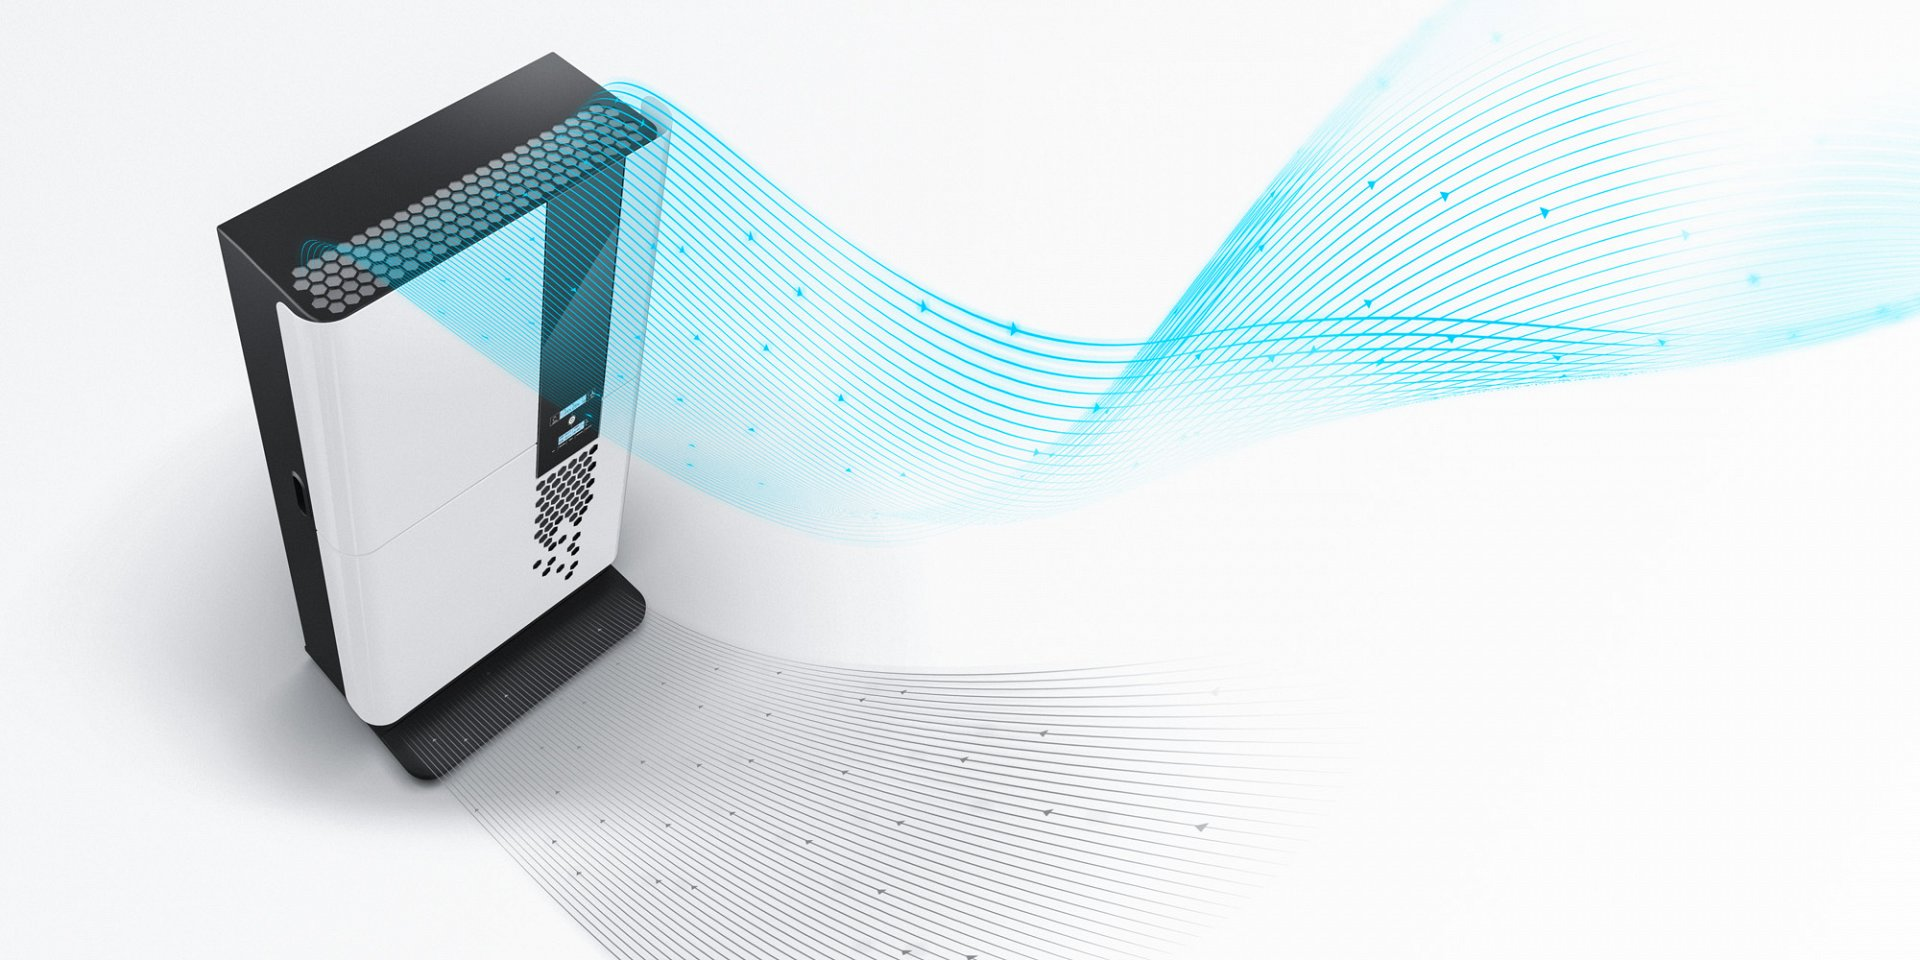 »INVISION AIR PURIFIER«